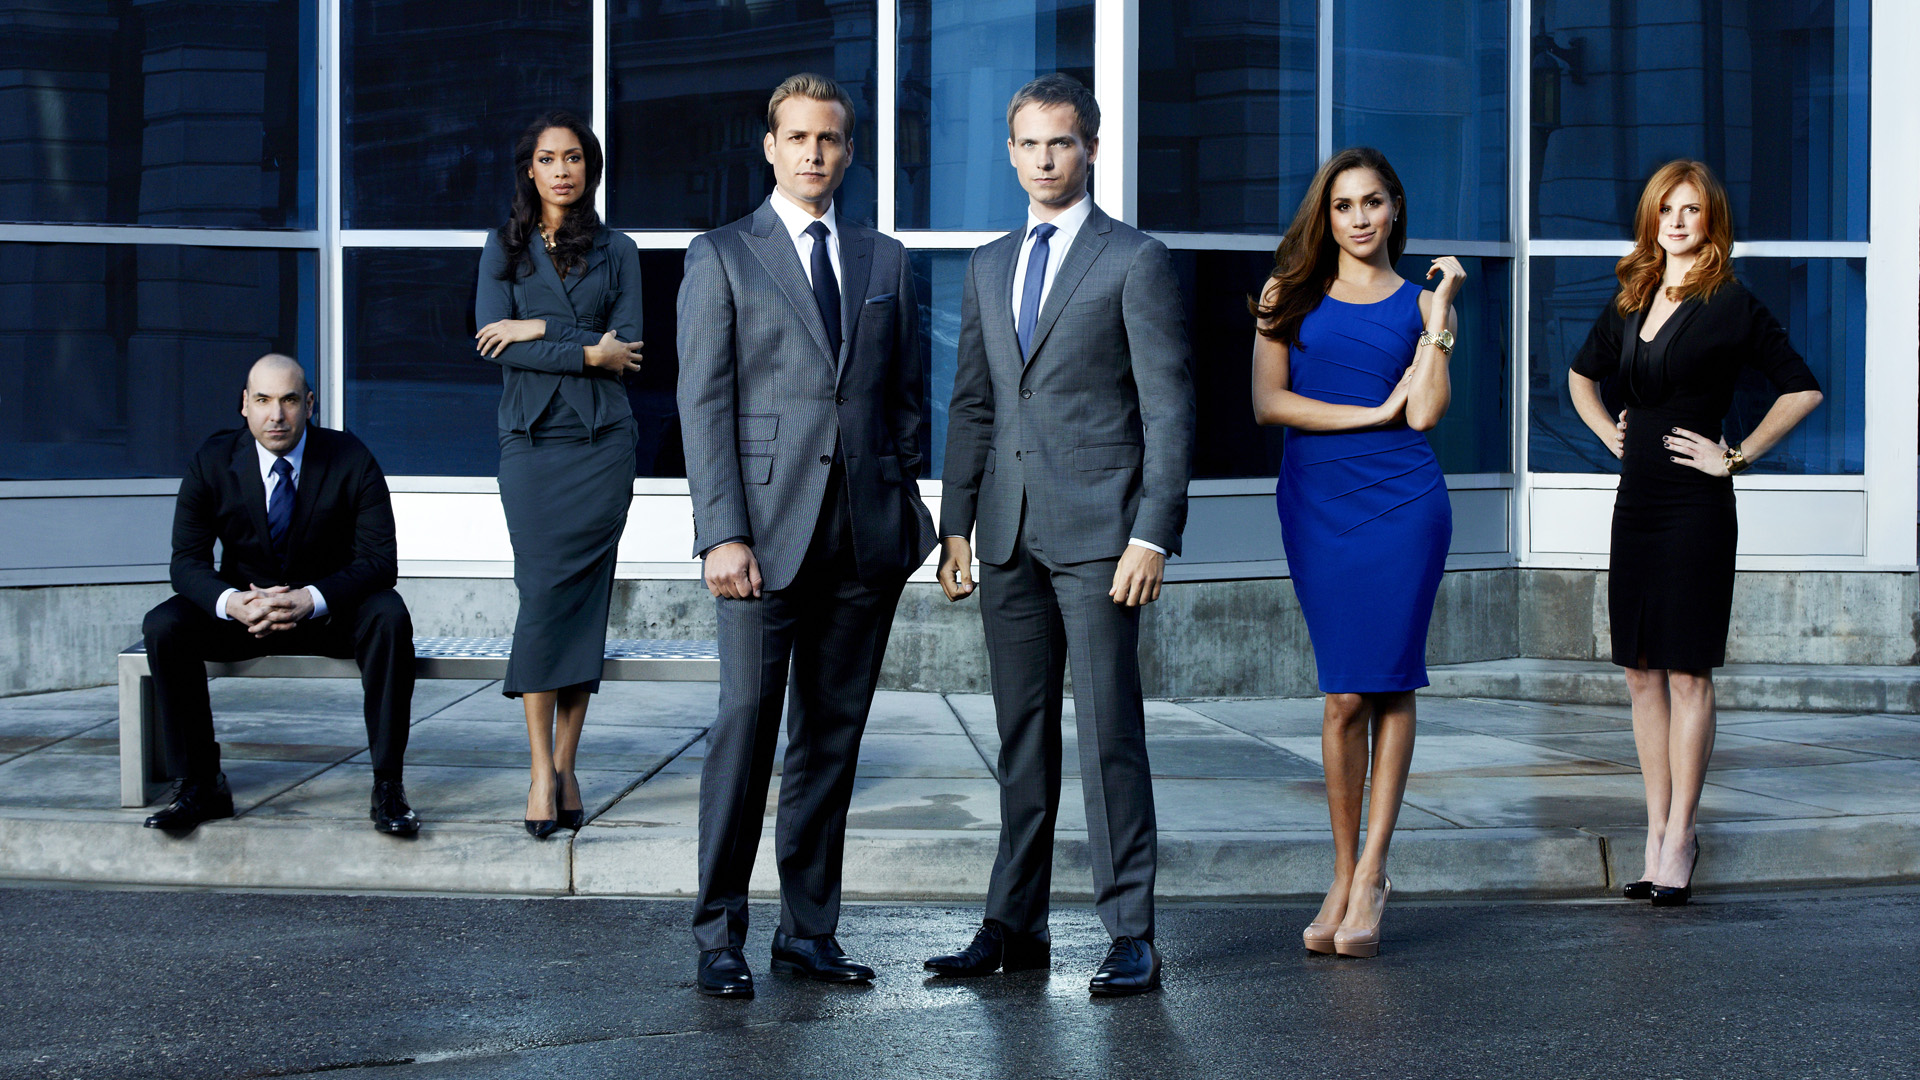 (Source: Suits)